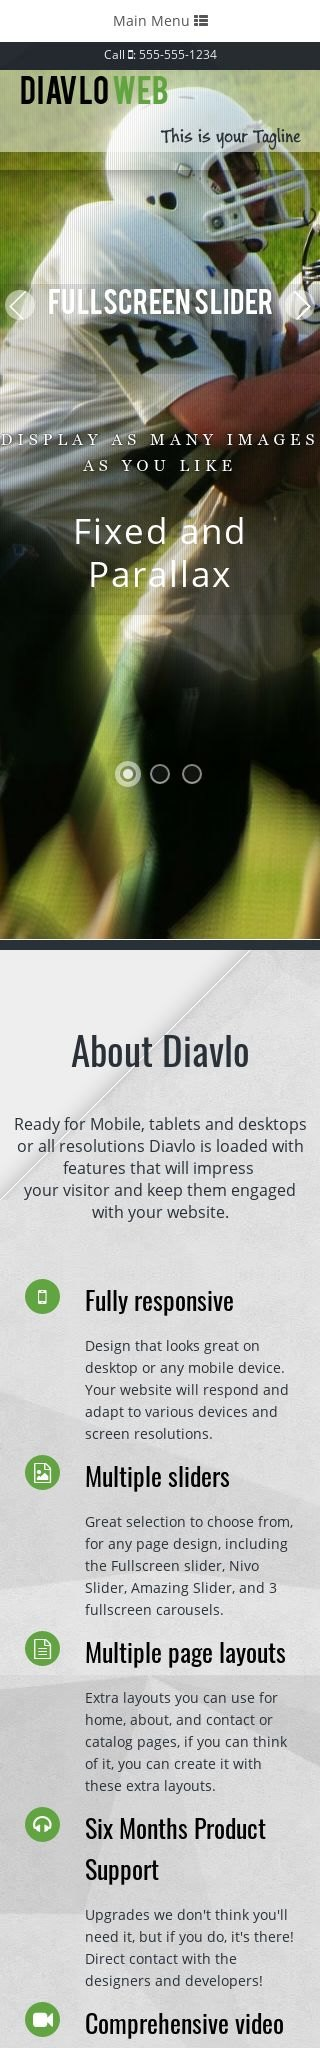 Mobile: Football Web Template